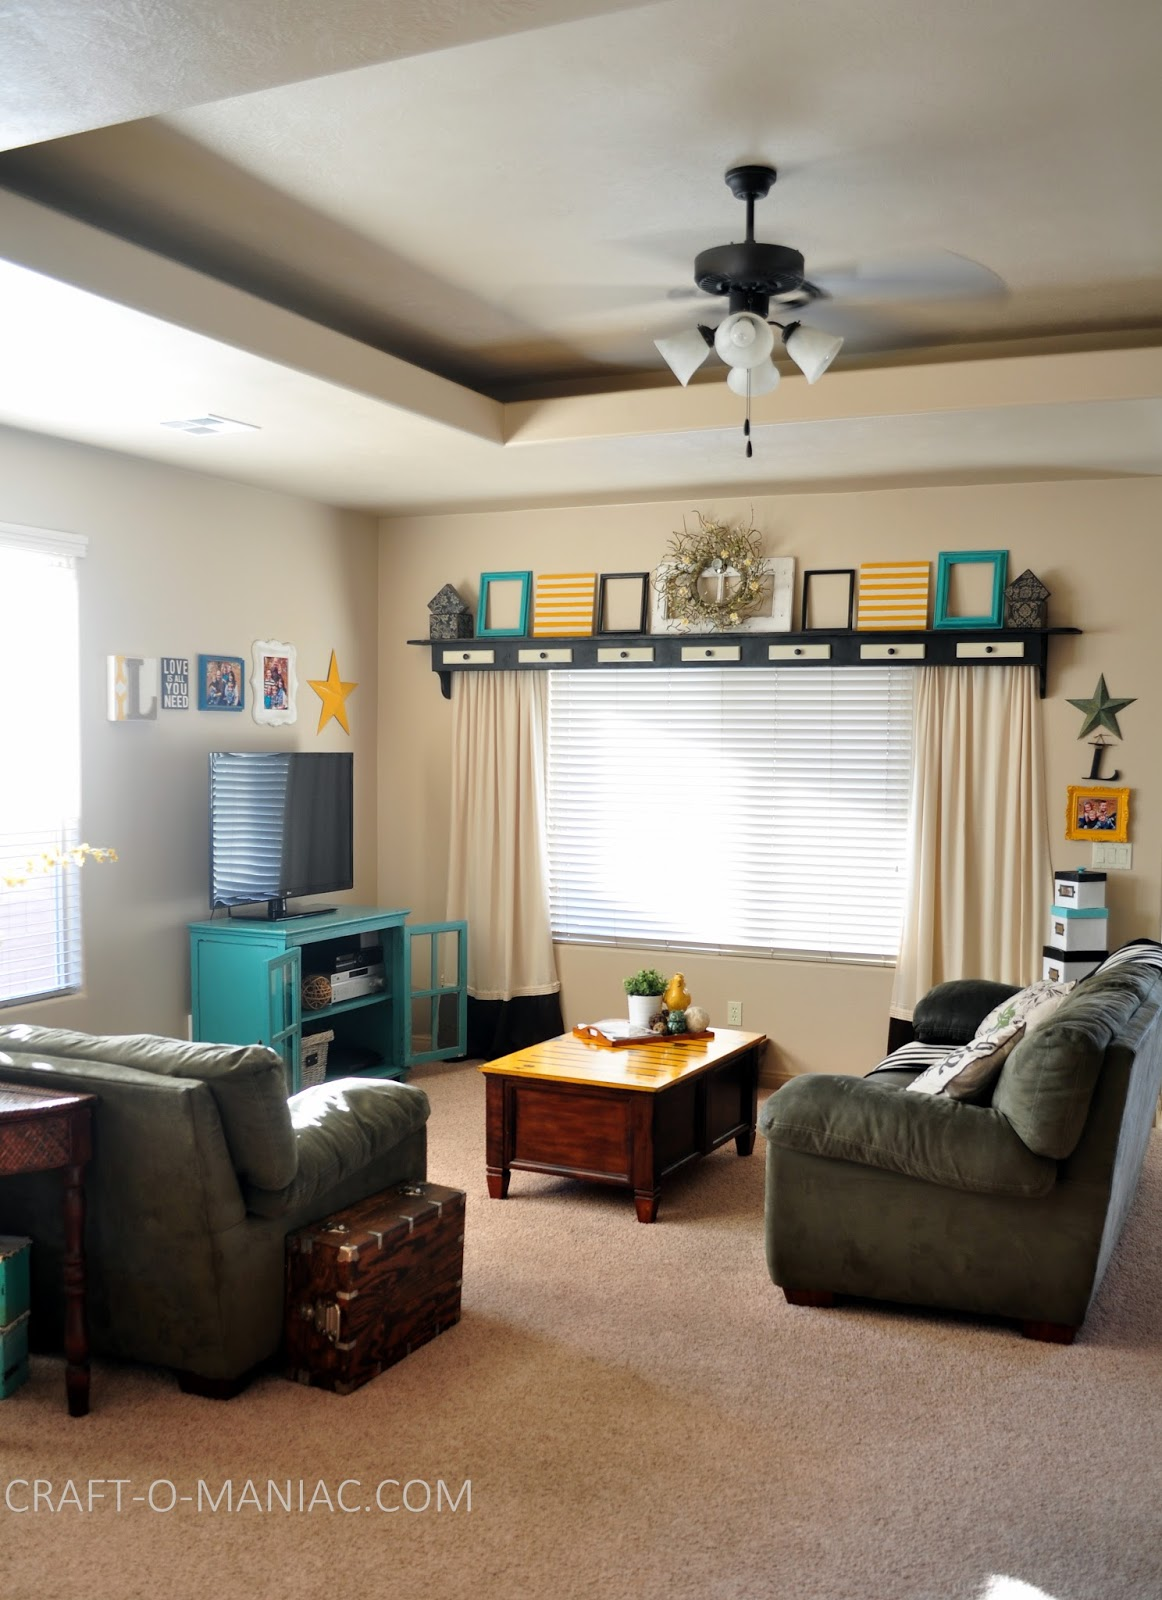 Home Decor~ My Turquoise and Yellow Family Room - Craft-O-Maniac